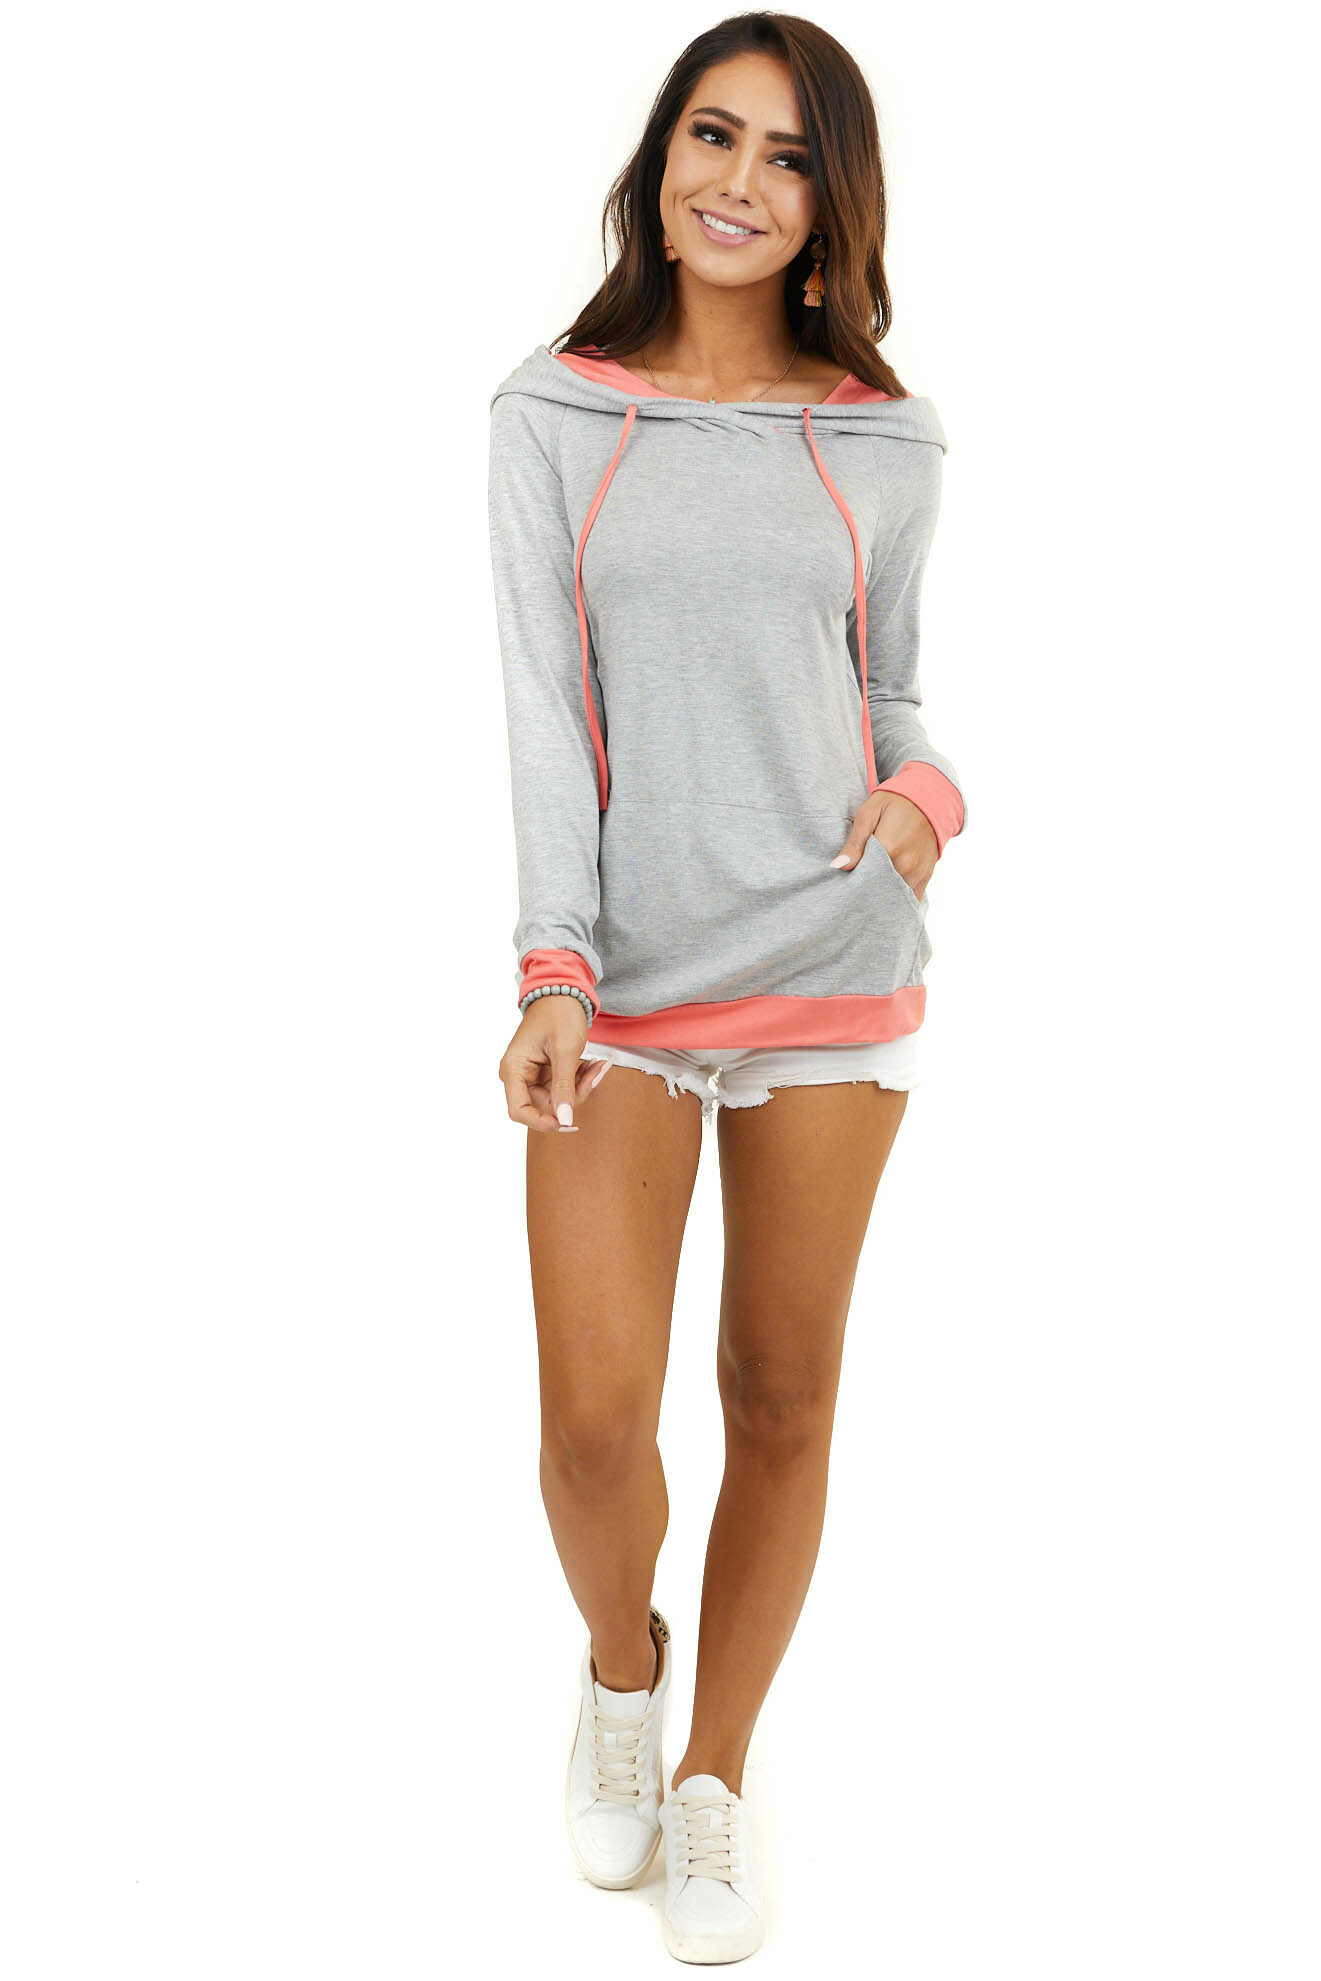 Heather Grey Long Sleeve Hoodie with Coral Contrasting Trim